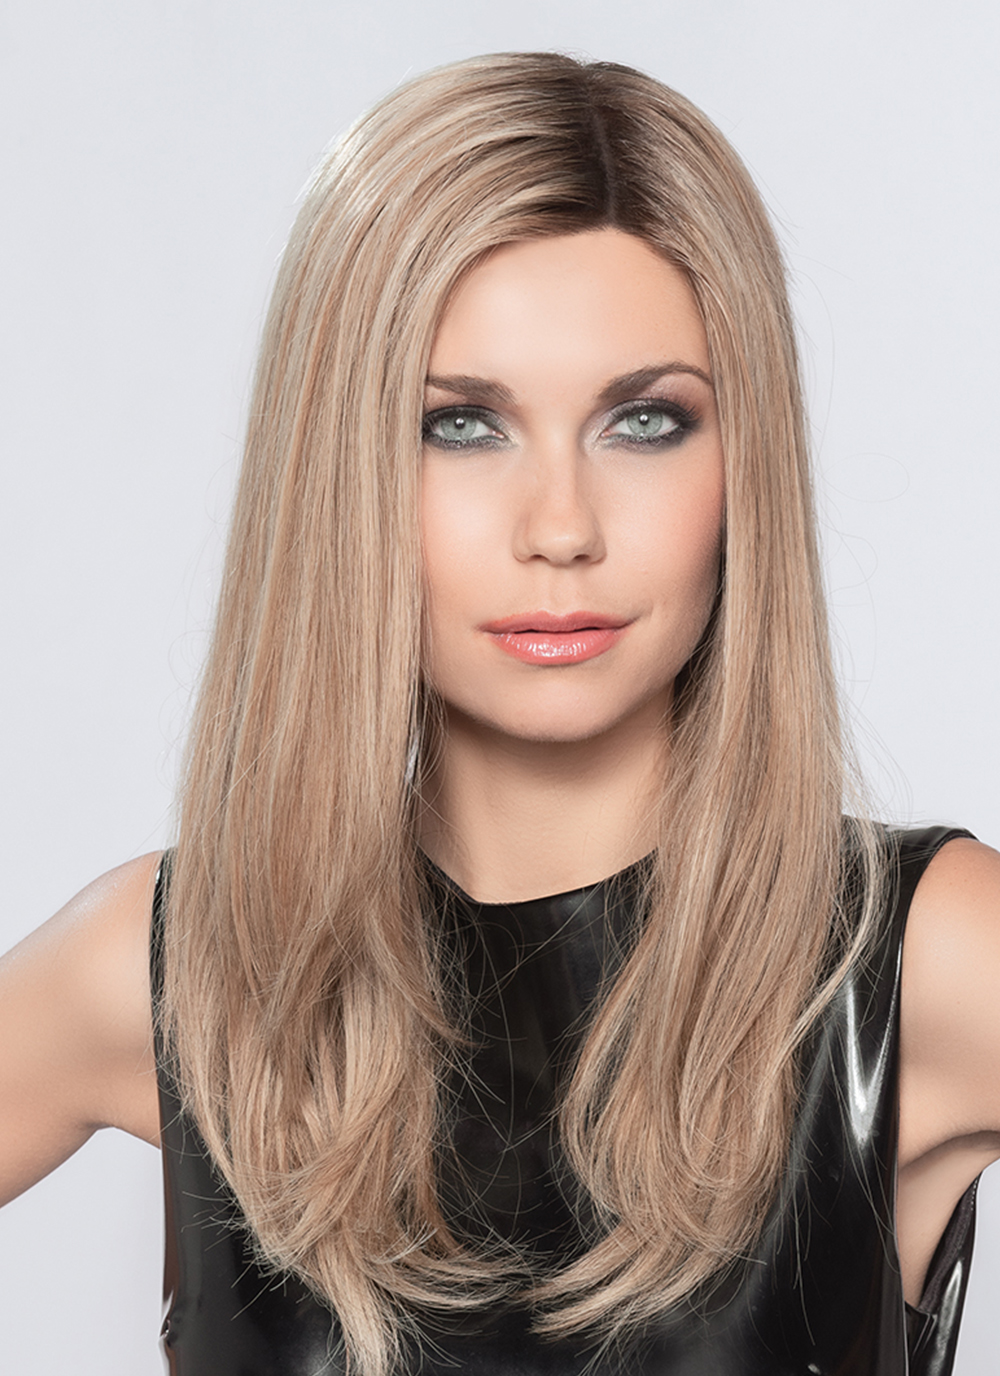 Xenita Hi by Elen Wille in Light Bernstein Rooted | 100% Remy Hair, High quality human hair